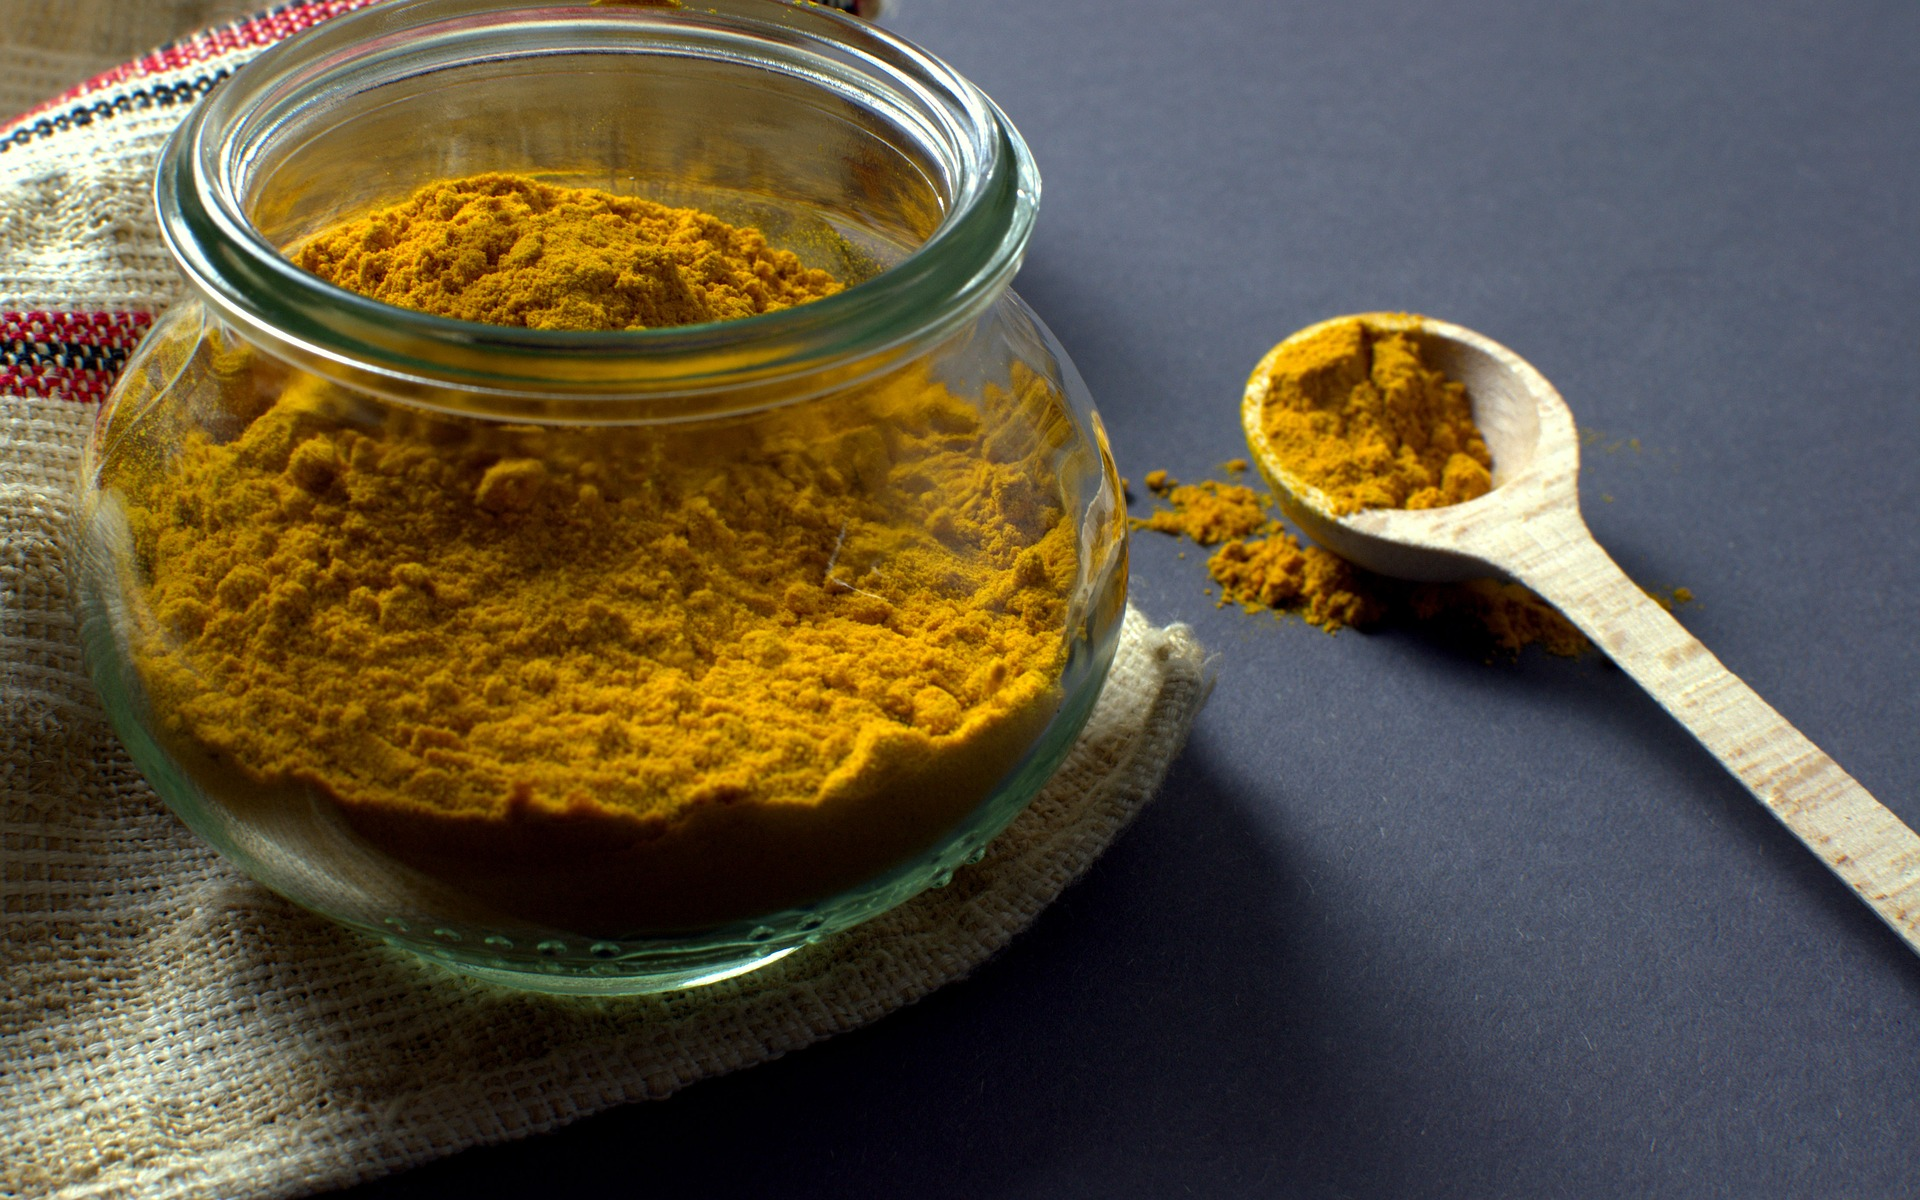 The healing power of turmeric/ Die heilende Wirkung von Kurkuma